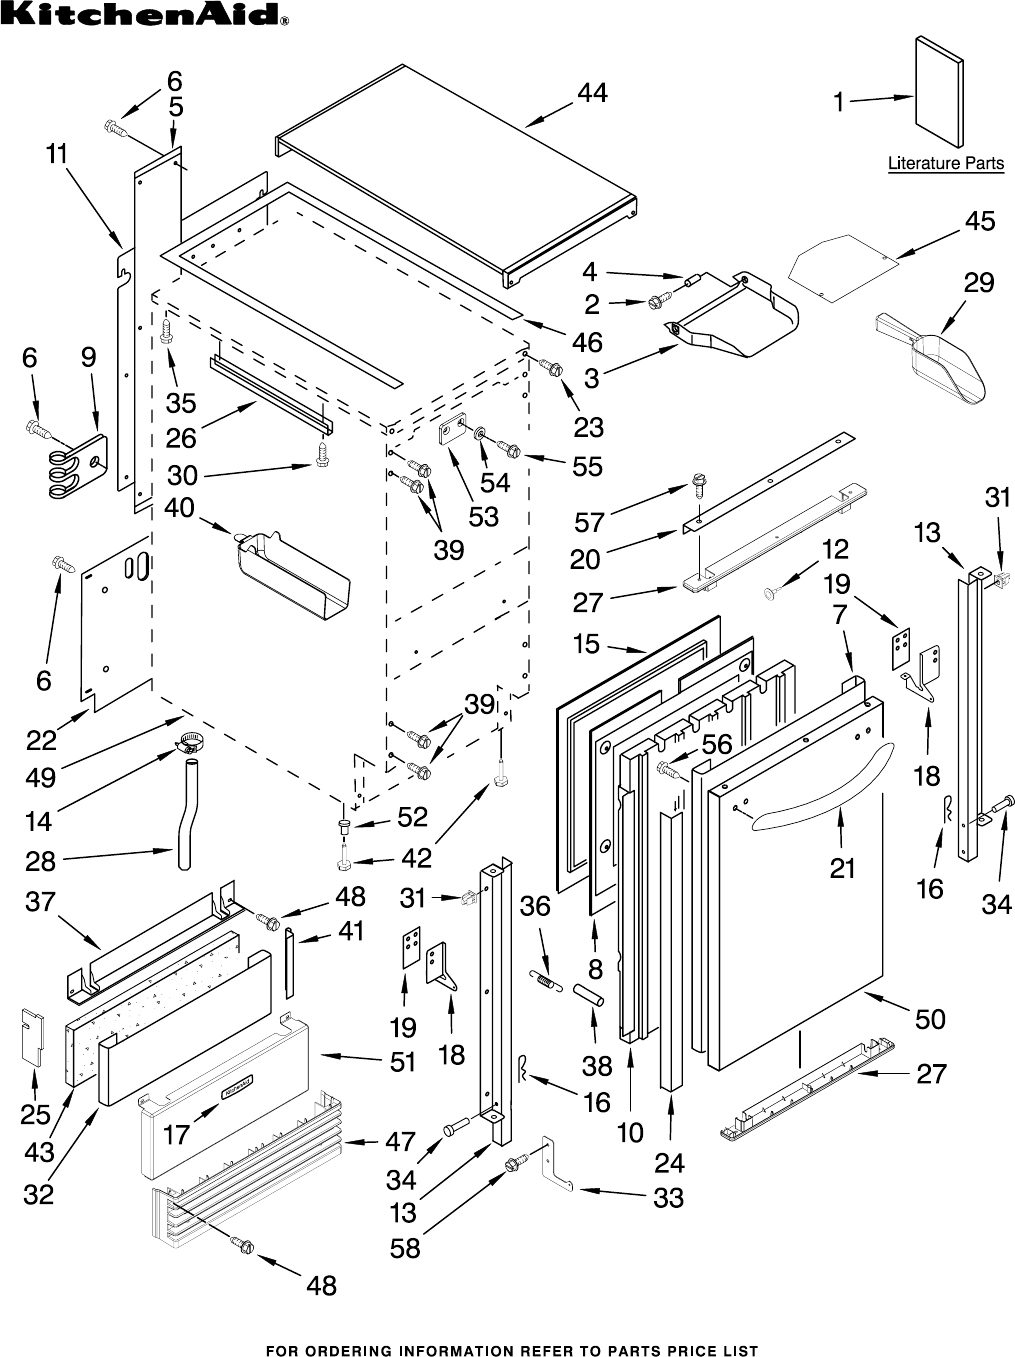 Whirlpool Side By Refrigerator Wiring Diagram, Whirlpool